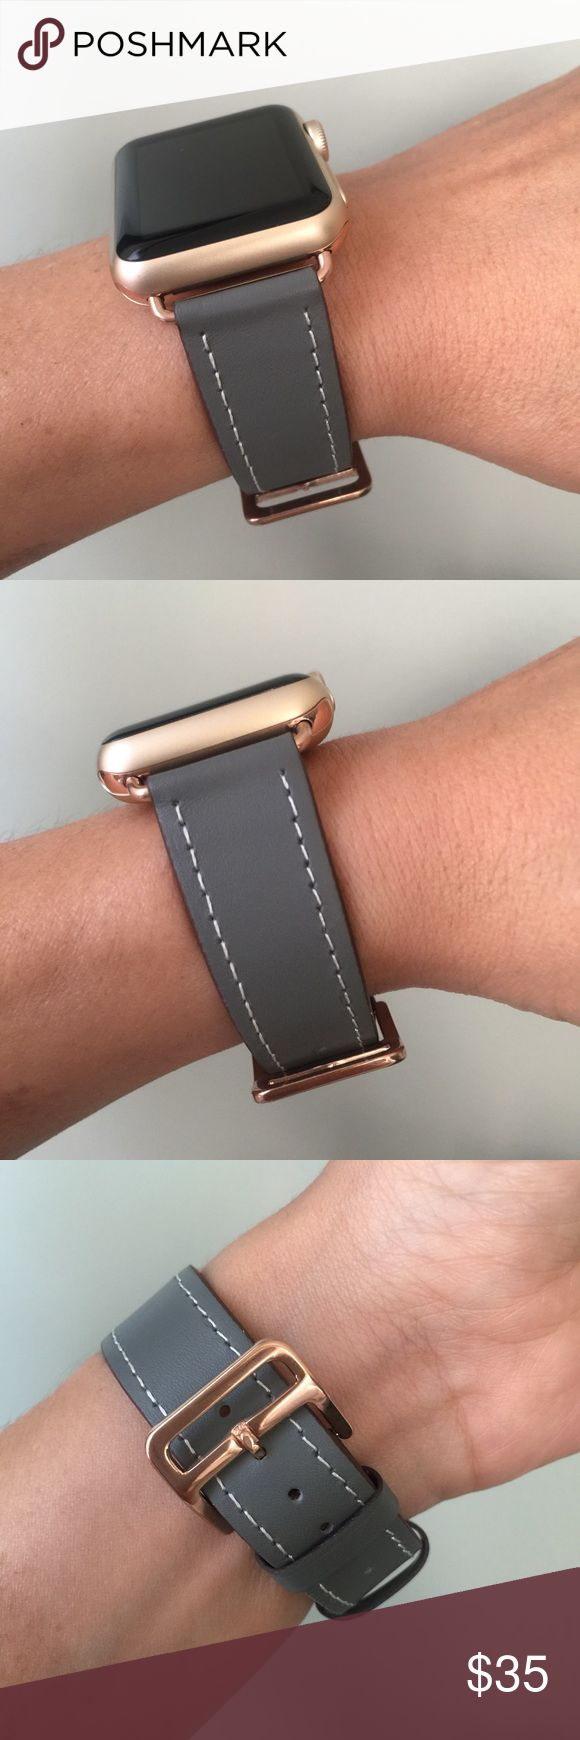 Gray Apple Watch band with ROSE GOLD hardware ⌚️ Gray Apple Watch band with ROSE GOLD hardware ⌚️  Leather band with ROSE GOLD adapters. It comes with 38mm or 42mm adapters. Please select your size when you purchase. The adapters also fit the Apple Watch Sport.   I also have other band colors, hardware colors and styles in my closet. Check them out!   I offer 15% off if you buy two or more! Please add BOTH items to the bundle for the discount to automatically apply.    Only the band is for…